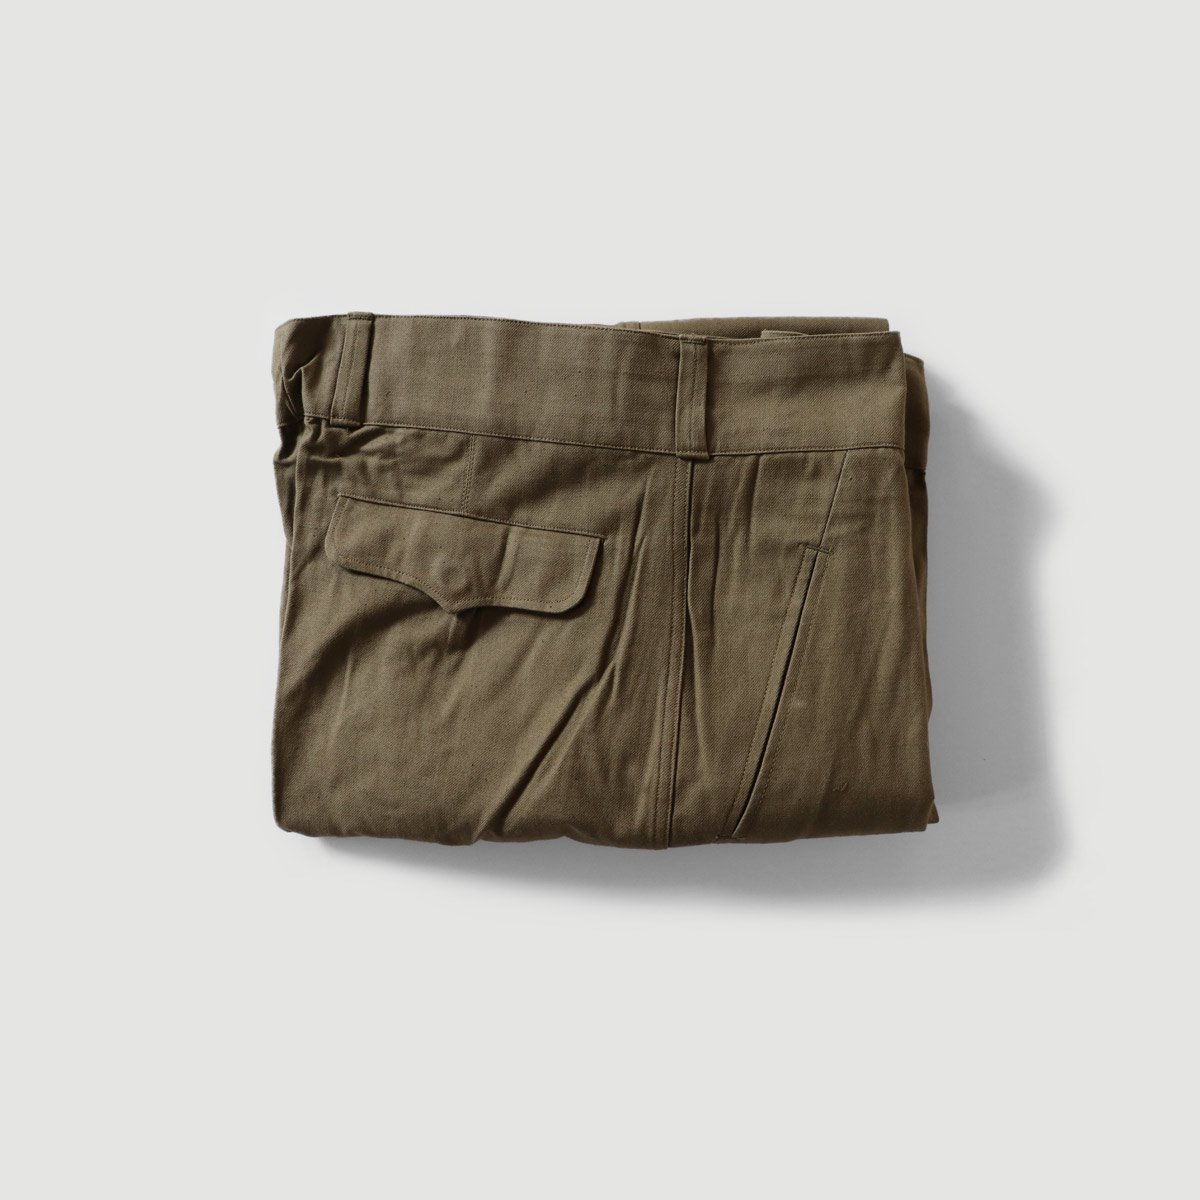 FRENCH ARMY M47 PANTS 詳細画像6